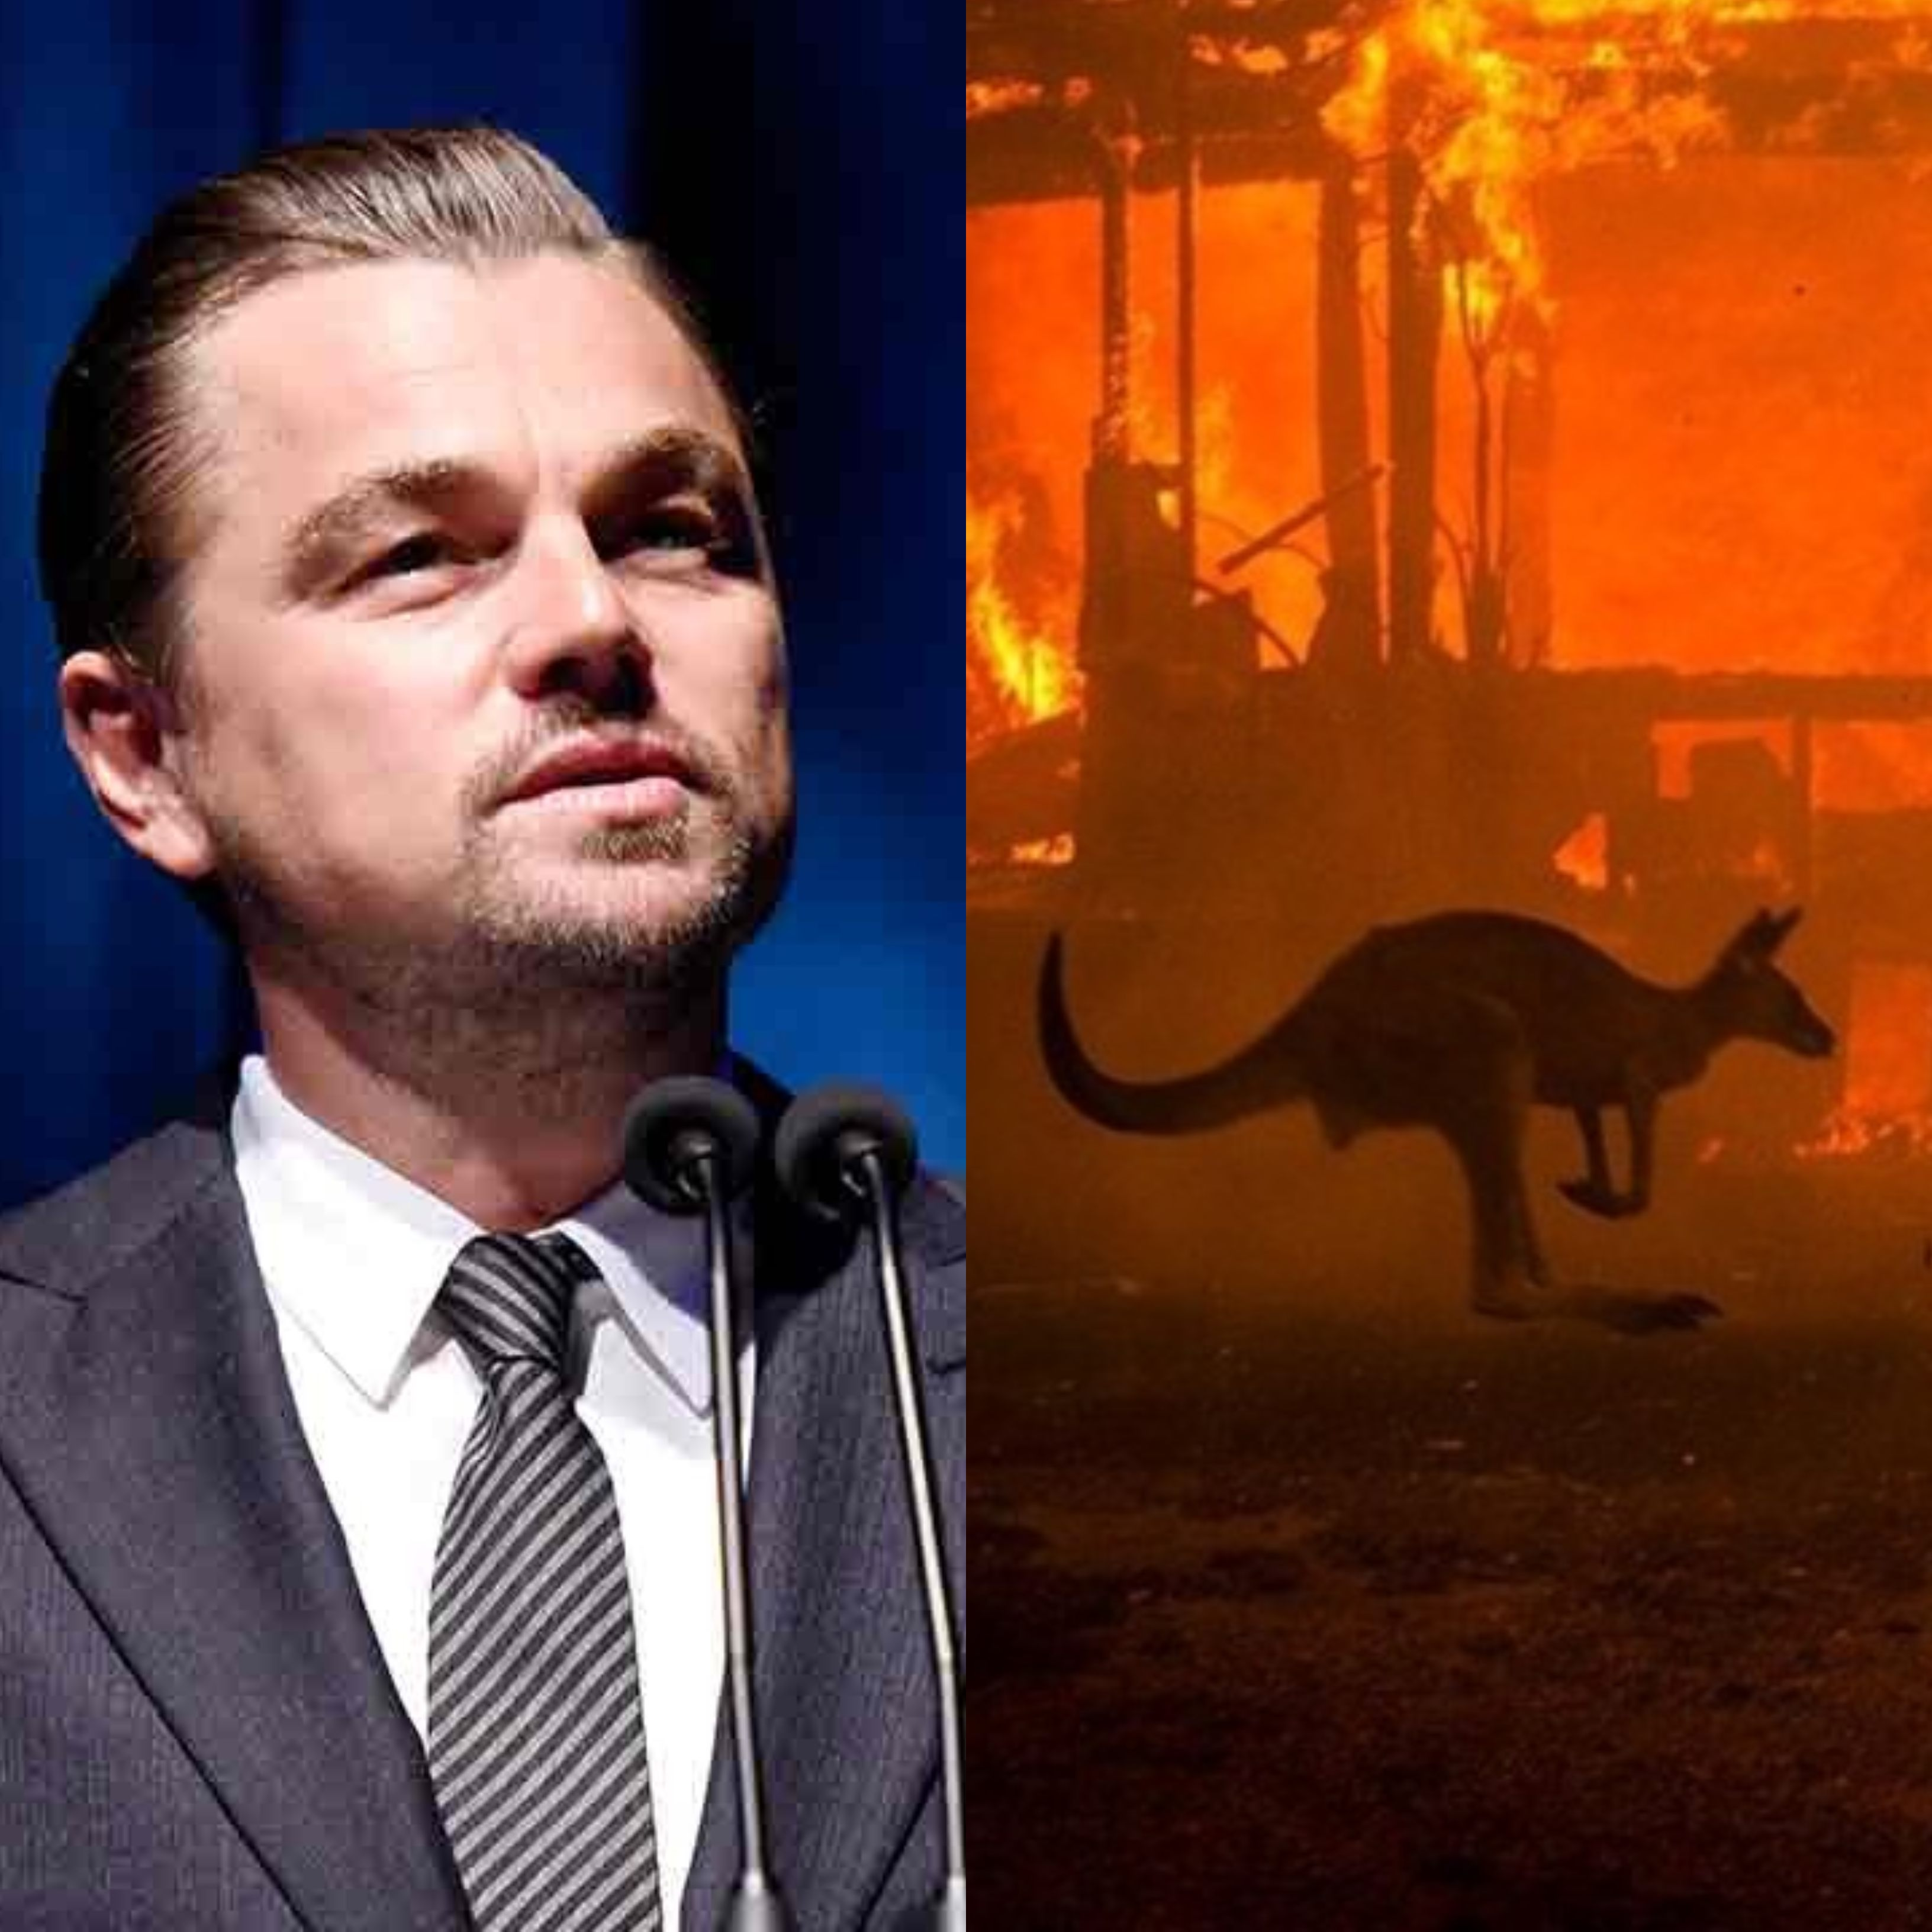 australiafires celebrities express concern over raging climate change crisis